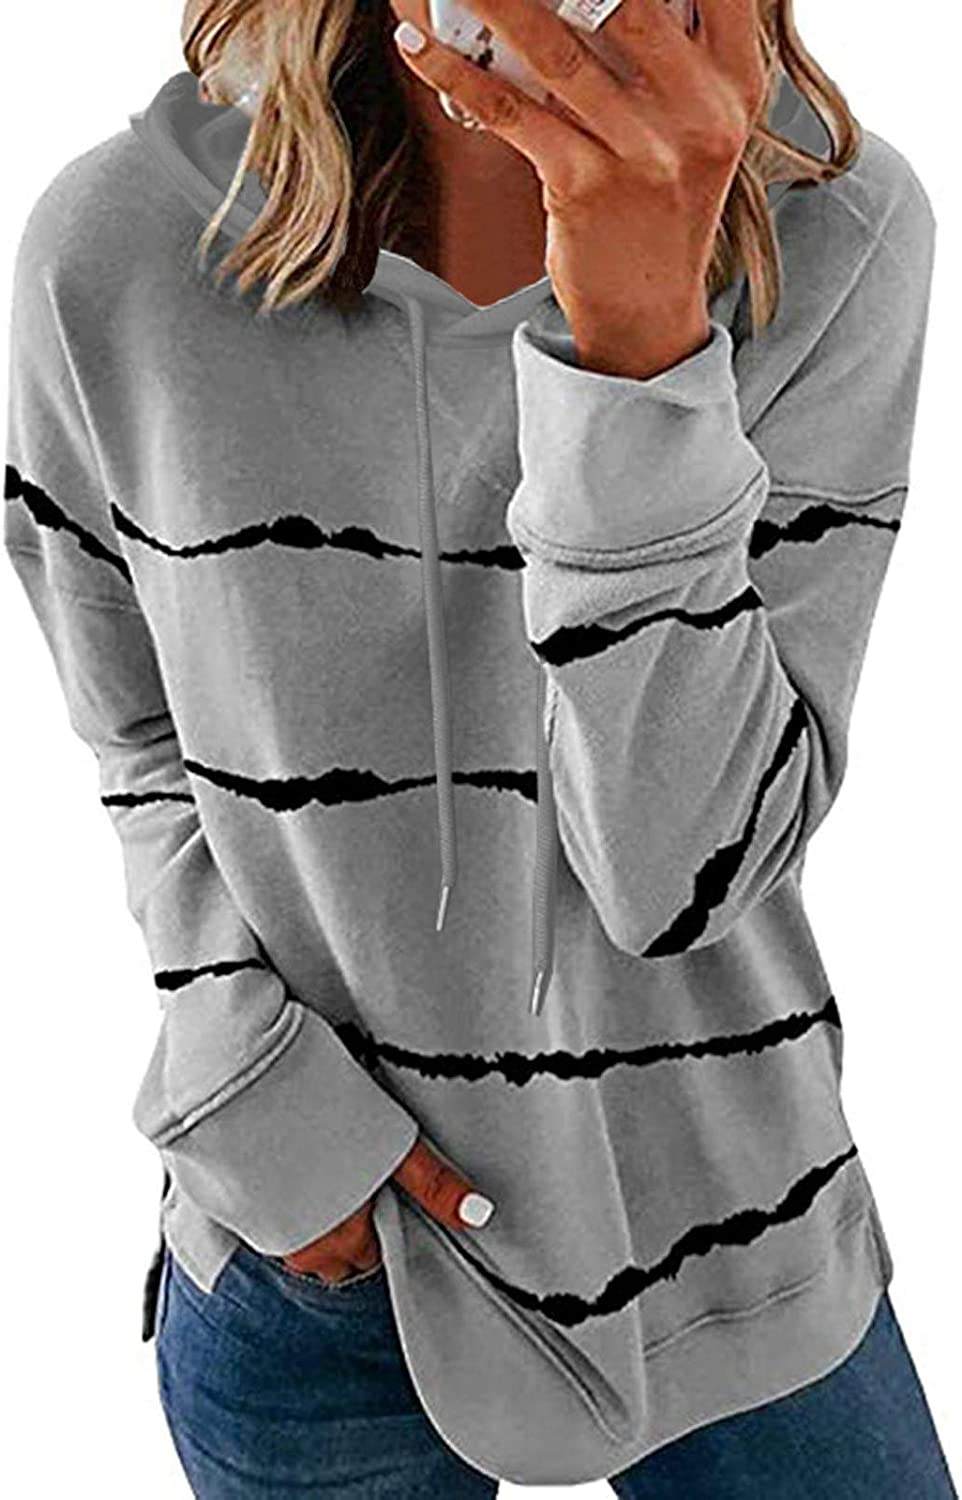 Hoodies for Women Pullover, Women's Casual Round Neck Fashion Long Sleeve Top Mid-Length Stripe Drawstring Sweatshirts